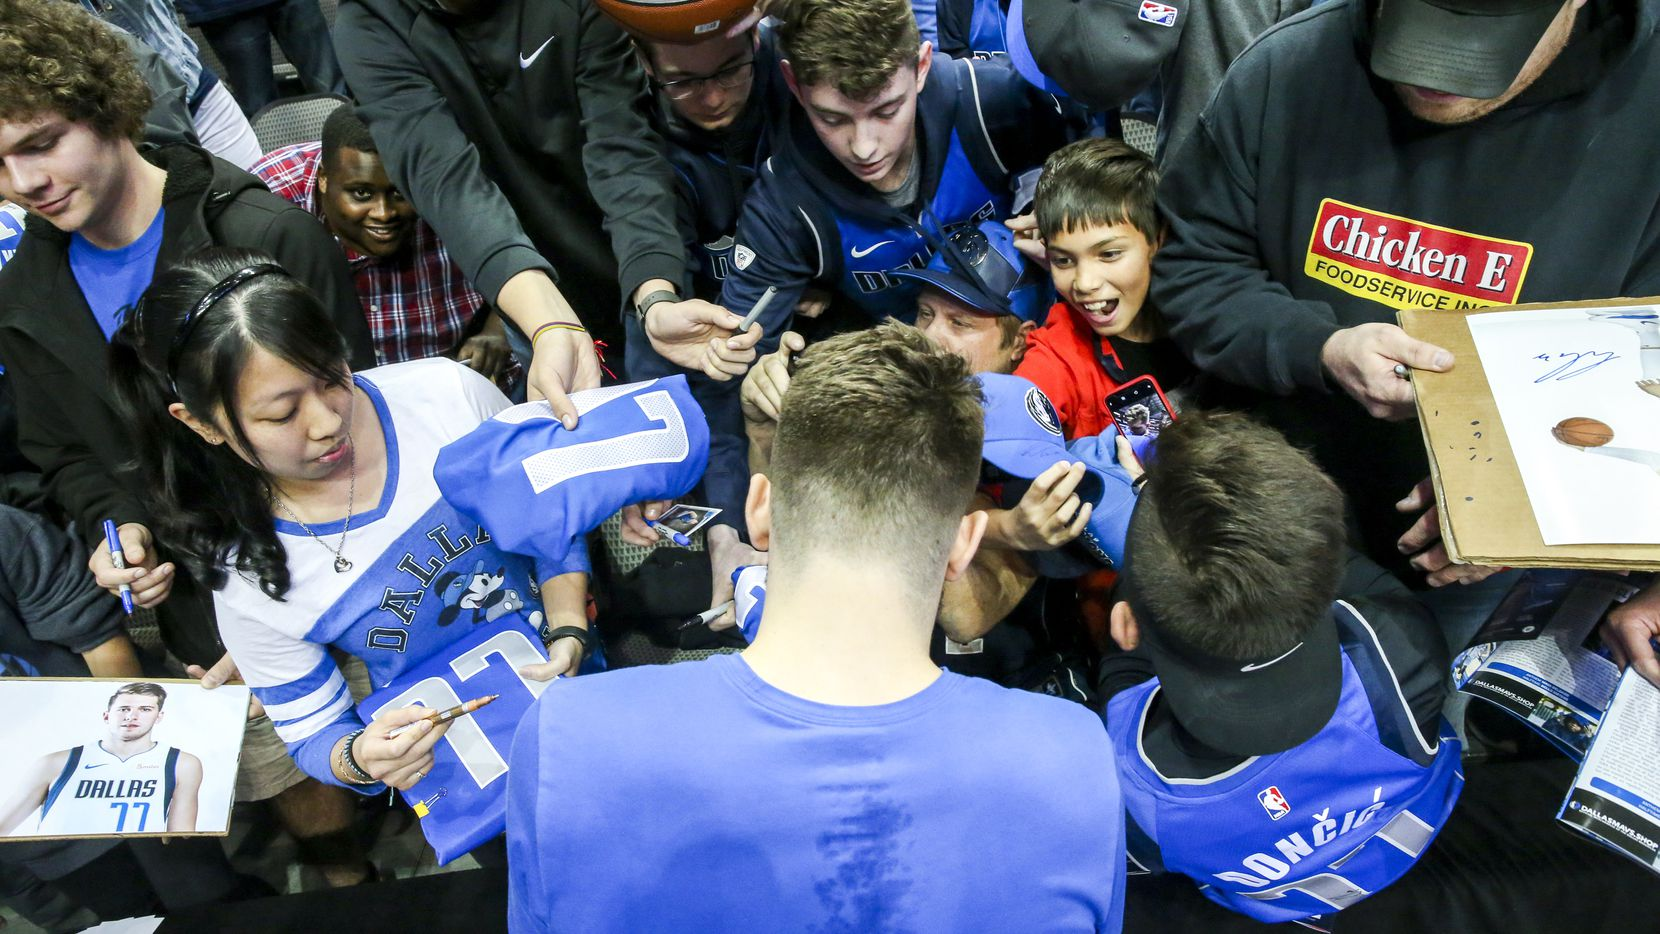 Dallas Mavericks forward Luka Doncic (77) signs autographs for fans before an NBA basketball game at American Airline Center in Dallas on Tuesday, Jan. 22, 2019.  (Shaban Athuman/The Dallas Morning News)